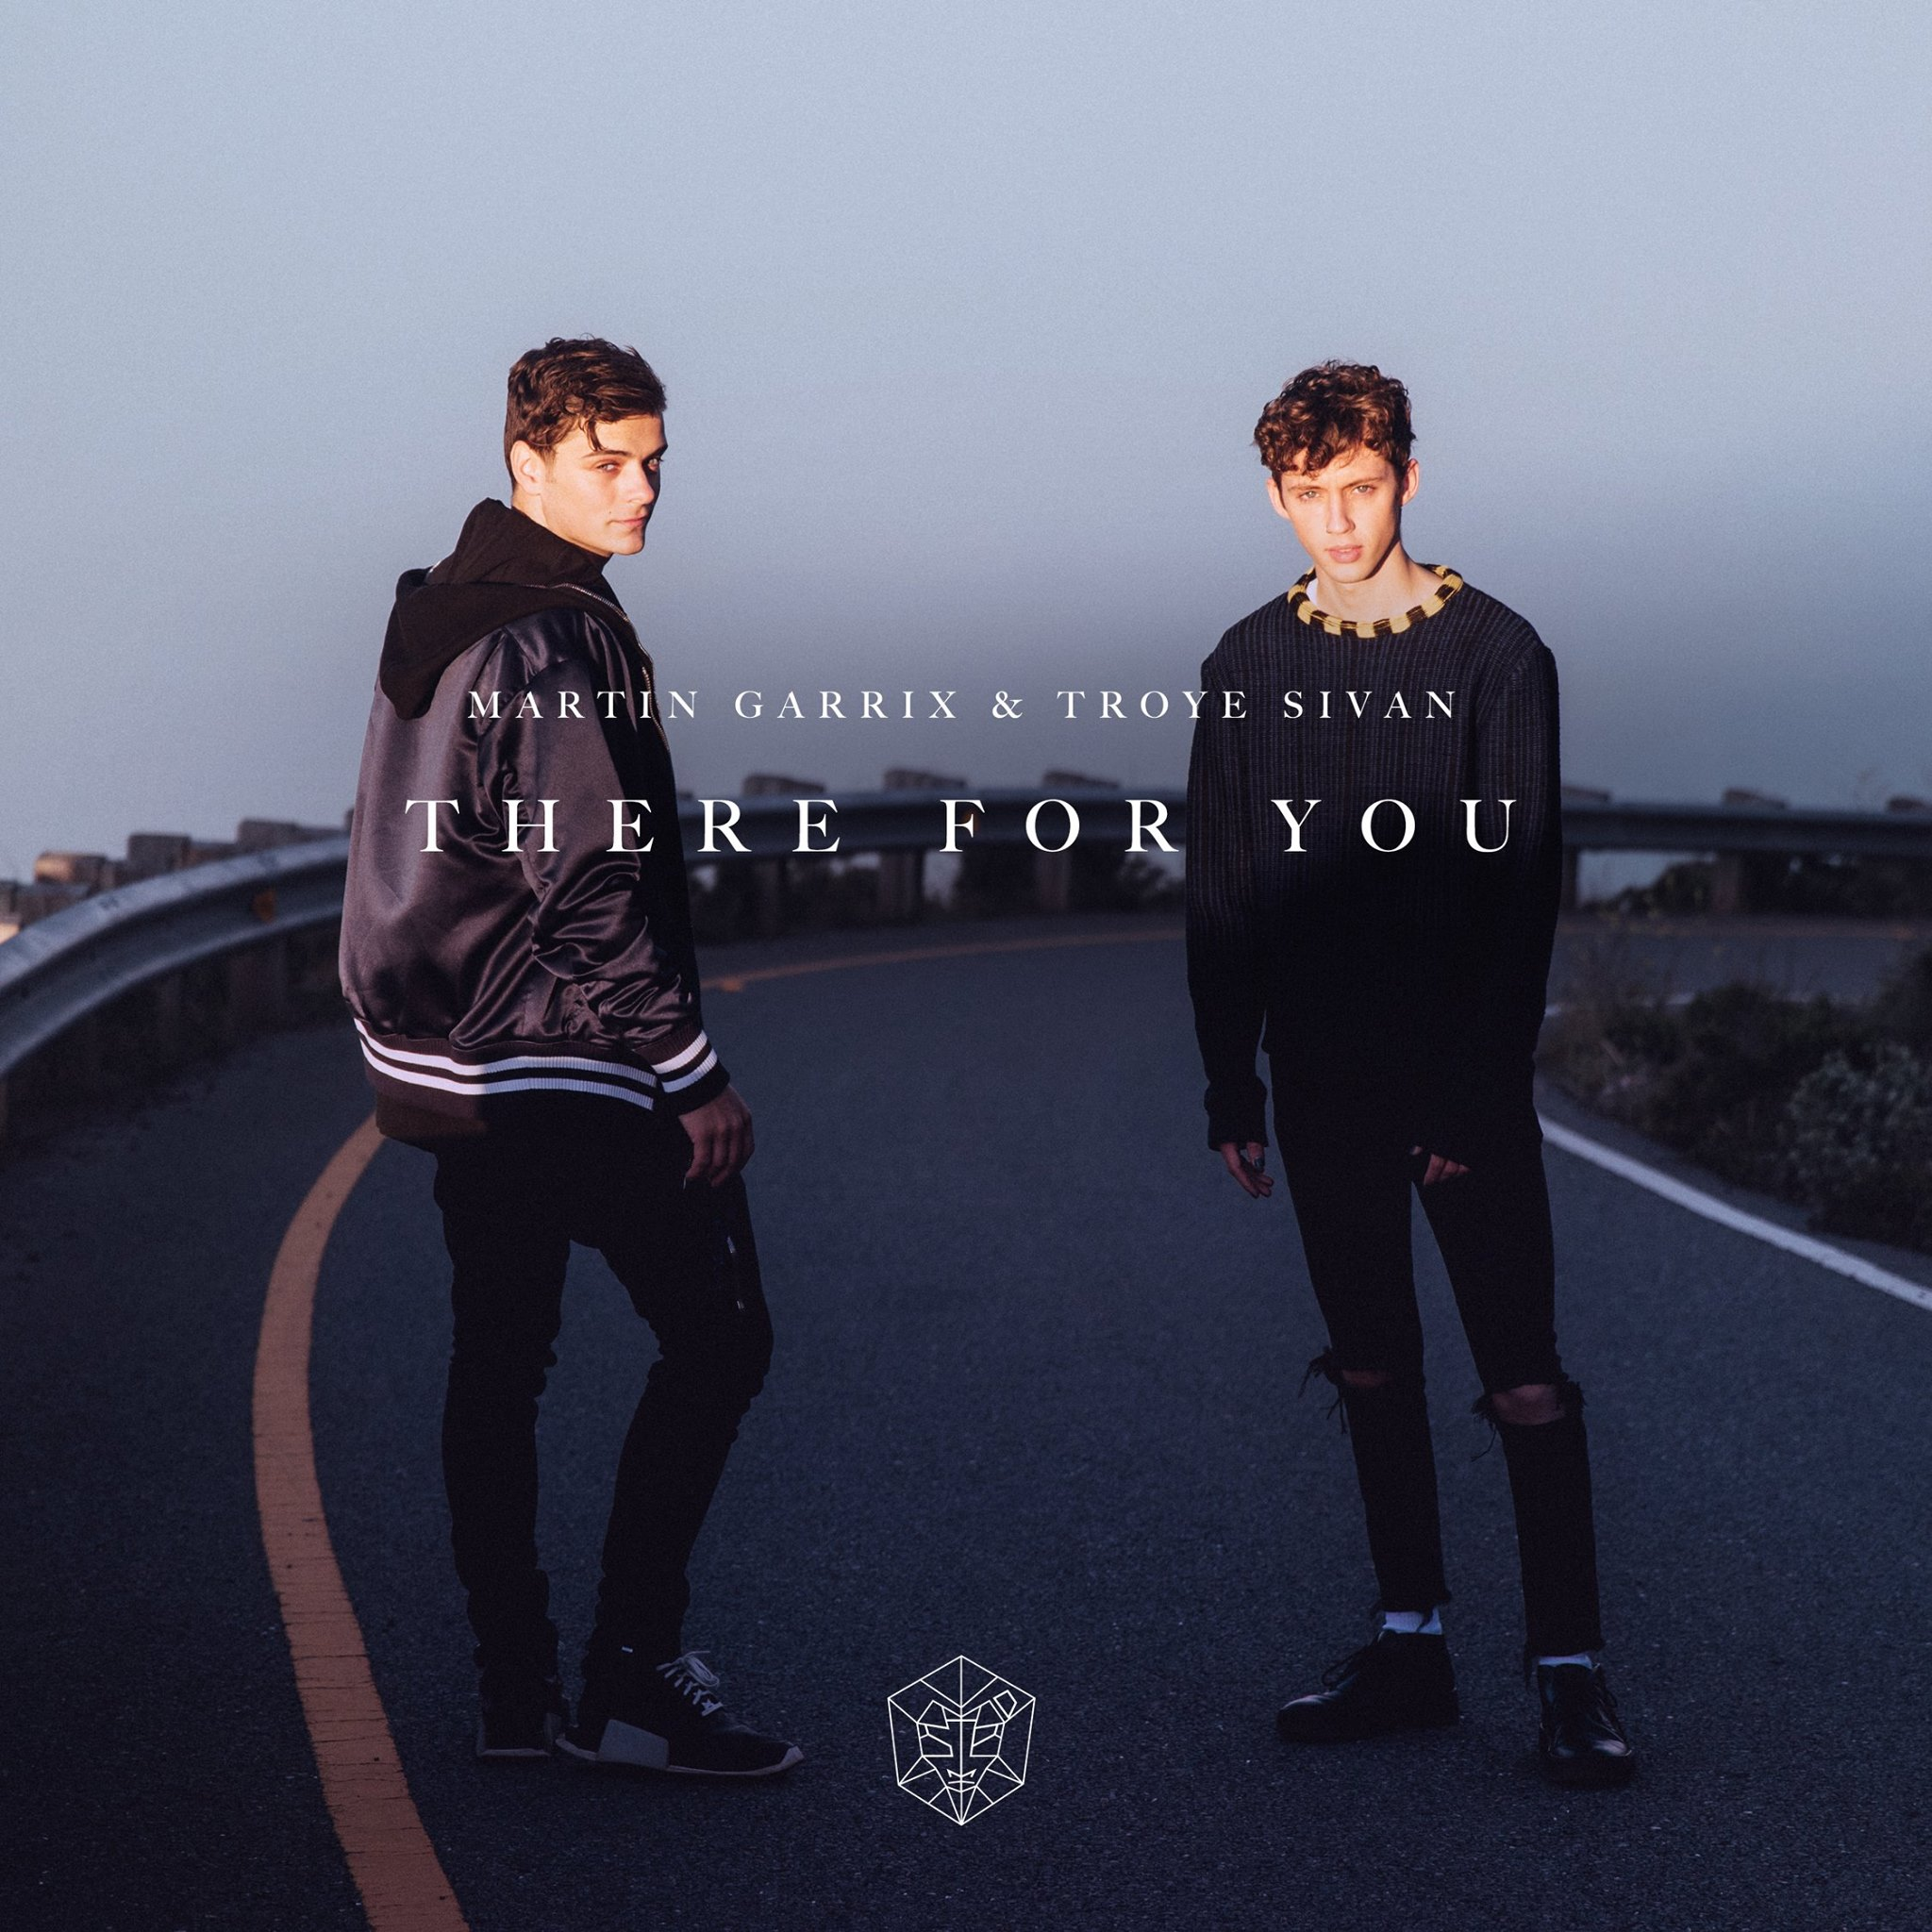 Martin Garrix & Troye Sivan, 'There for You' | Track Review